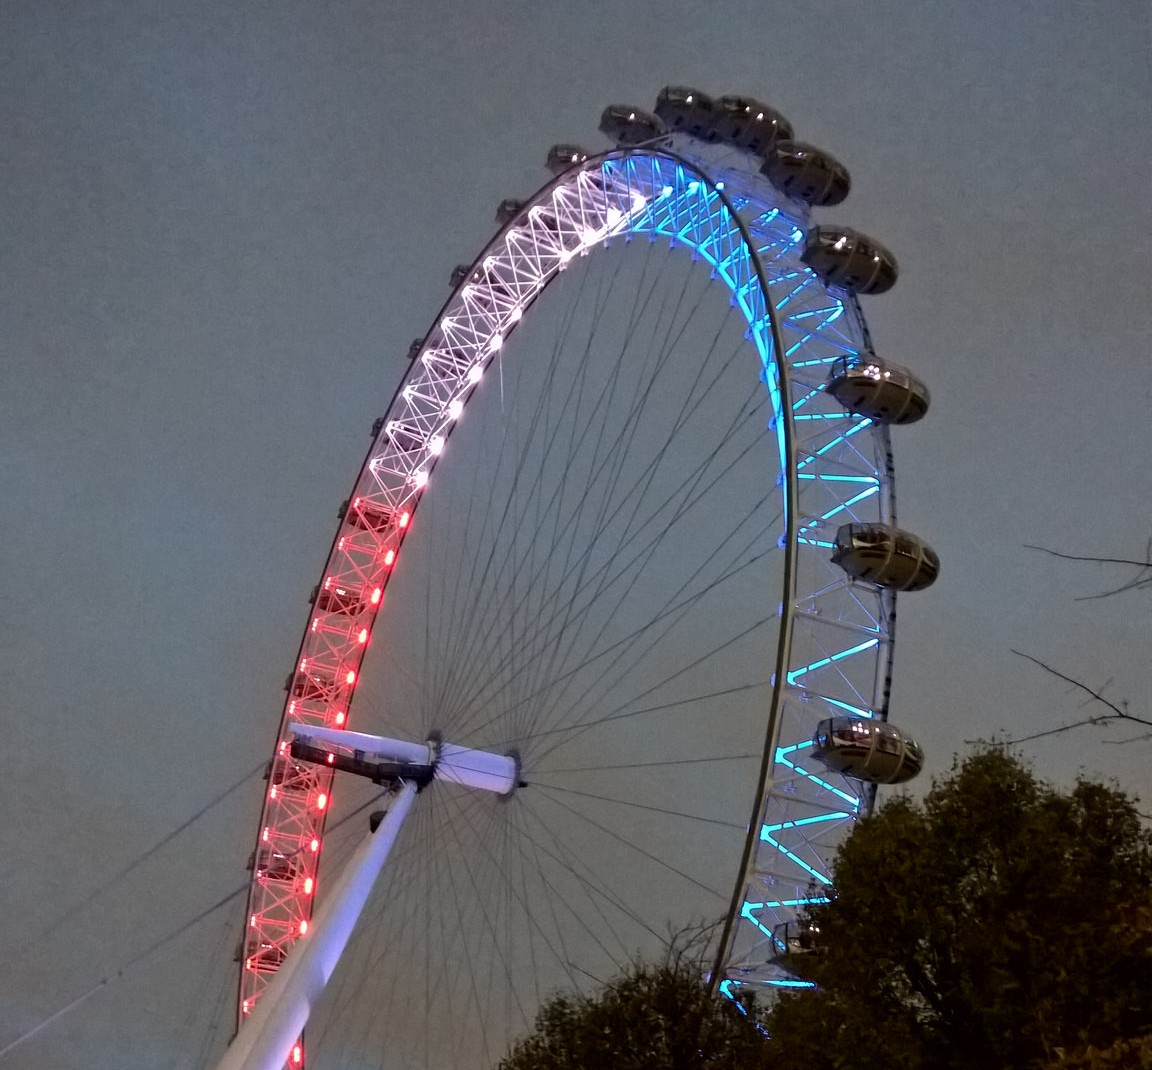 The London Eye, en Londres, la noche del 14 de noviembre de 2015. Subido a Flickr por Garry Knight.